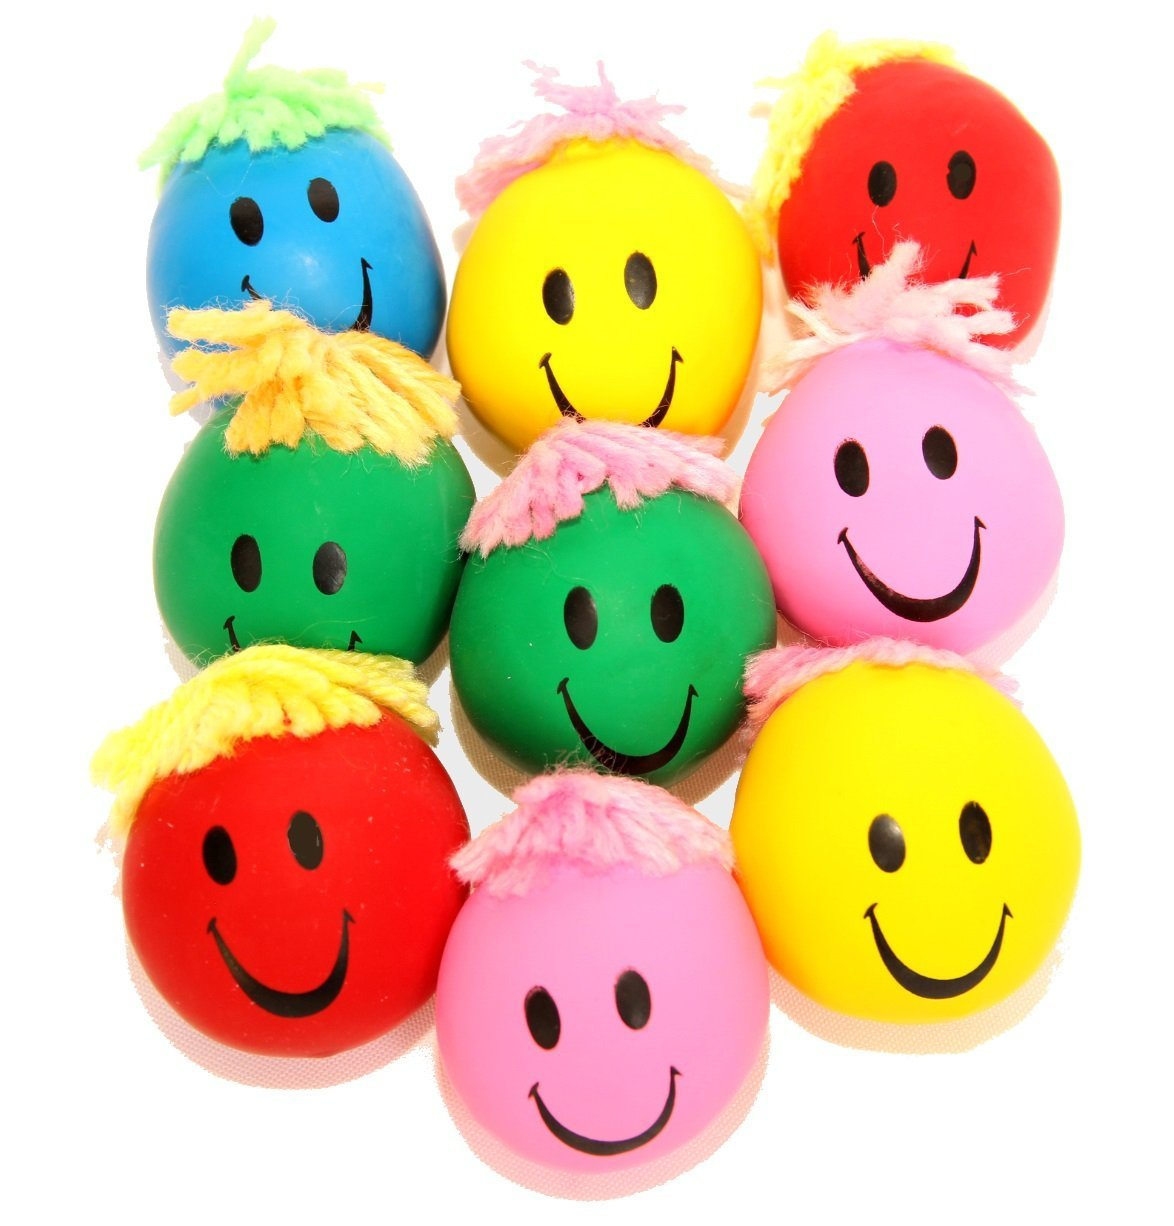 "dazzling toys 24 Pack Stress Balls | 2 Dozen 2"" Inch Neon Smile Face Happy Squeeze and Stress Balls 